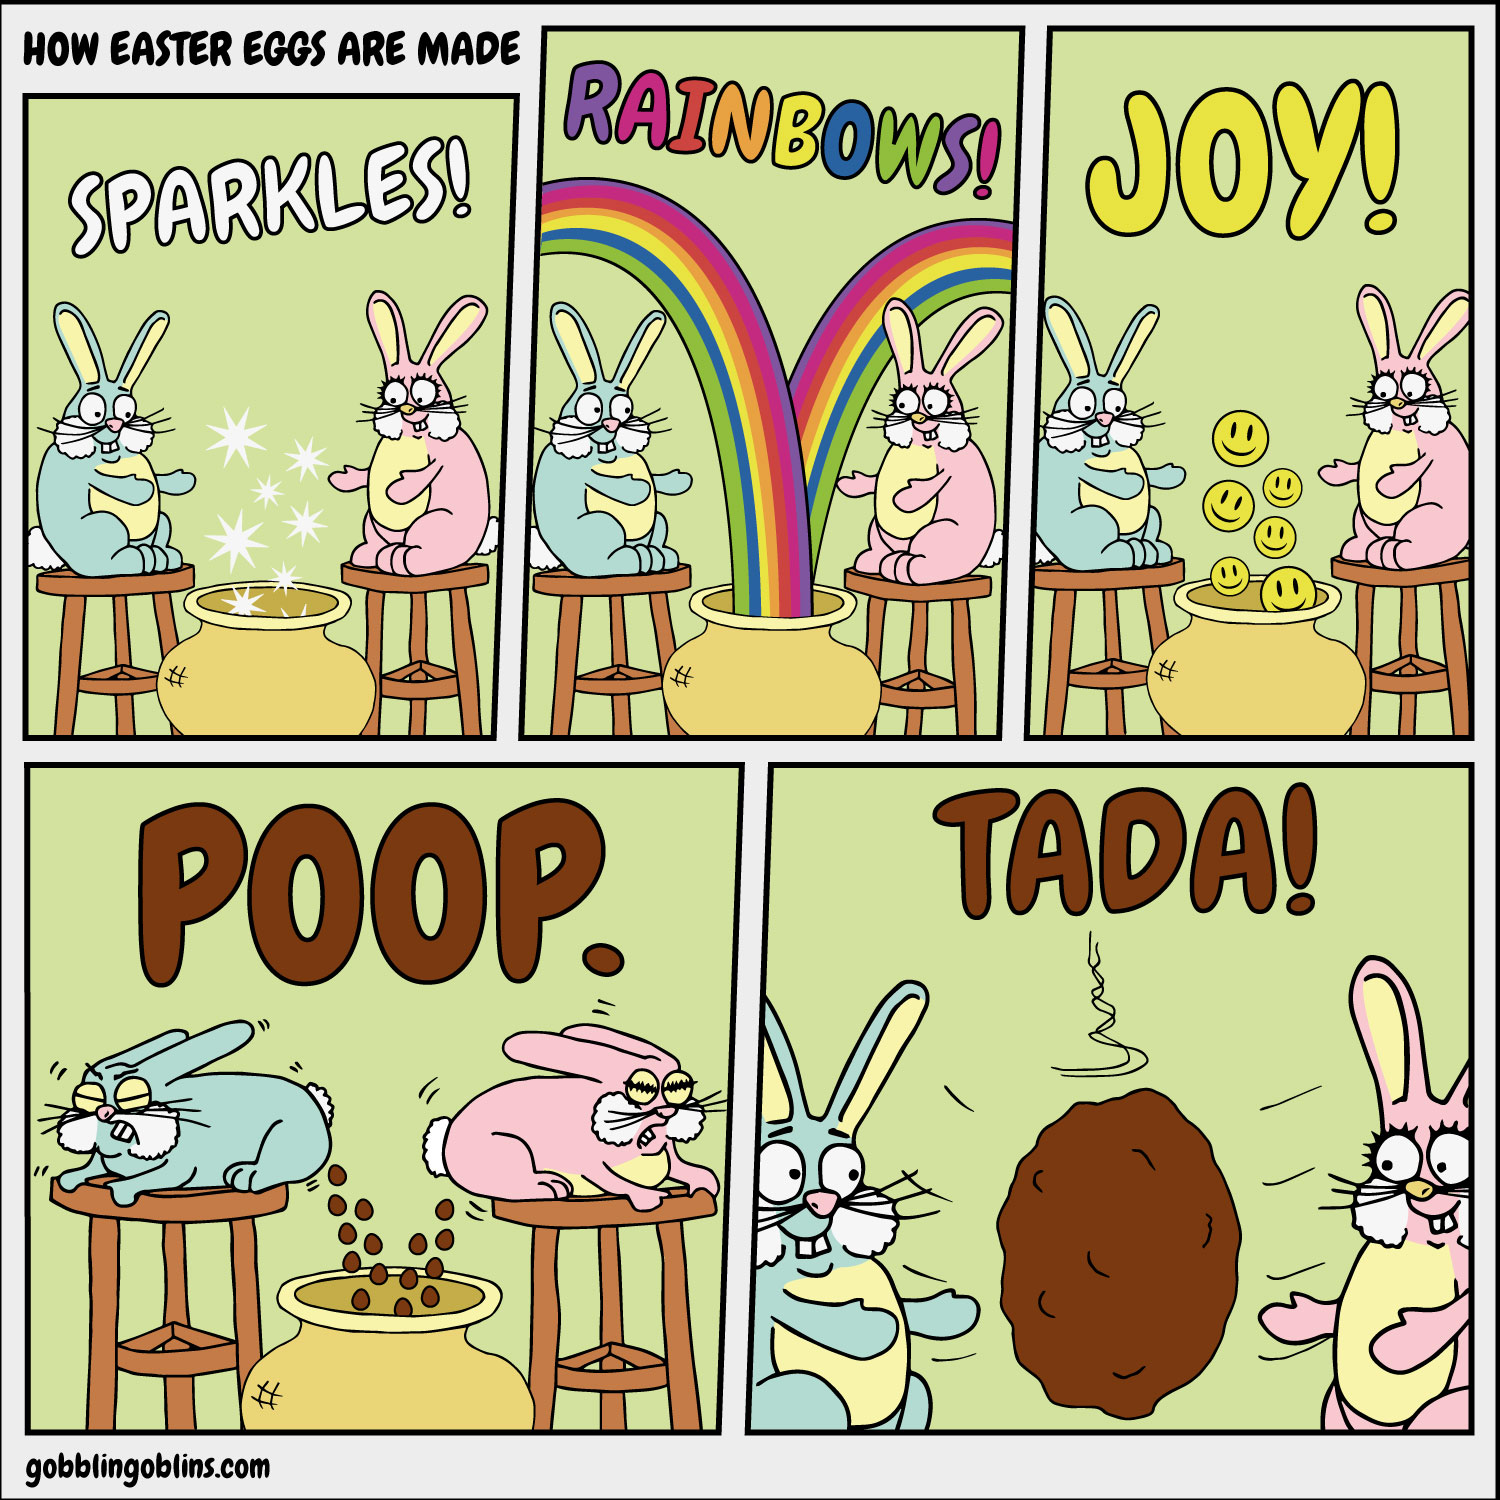 How Easter Eggs Are Made - a comic by Gobblin' Goblins